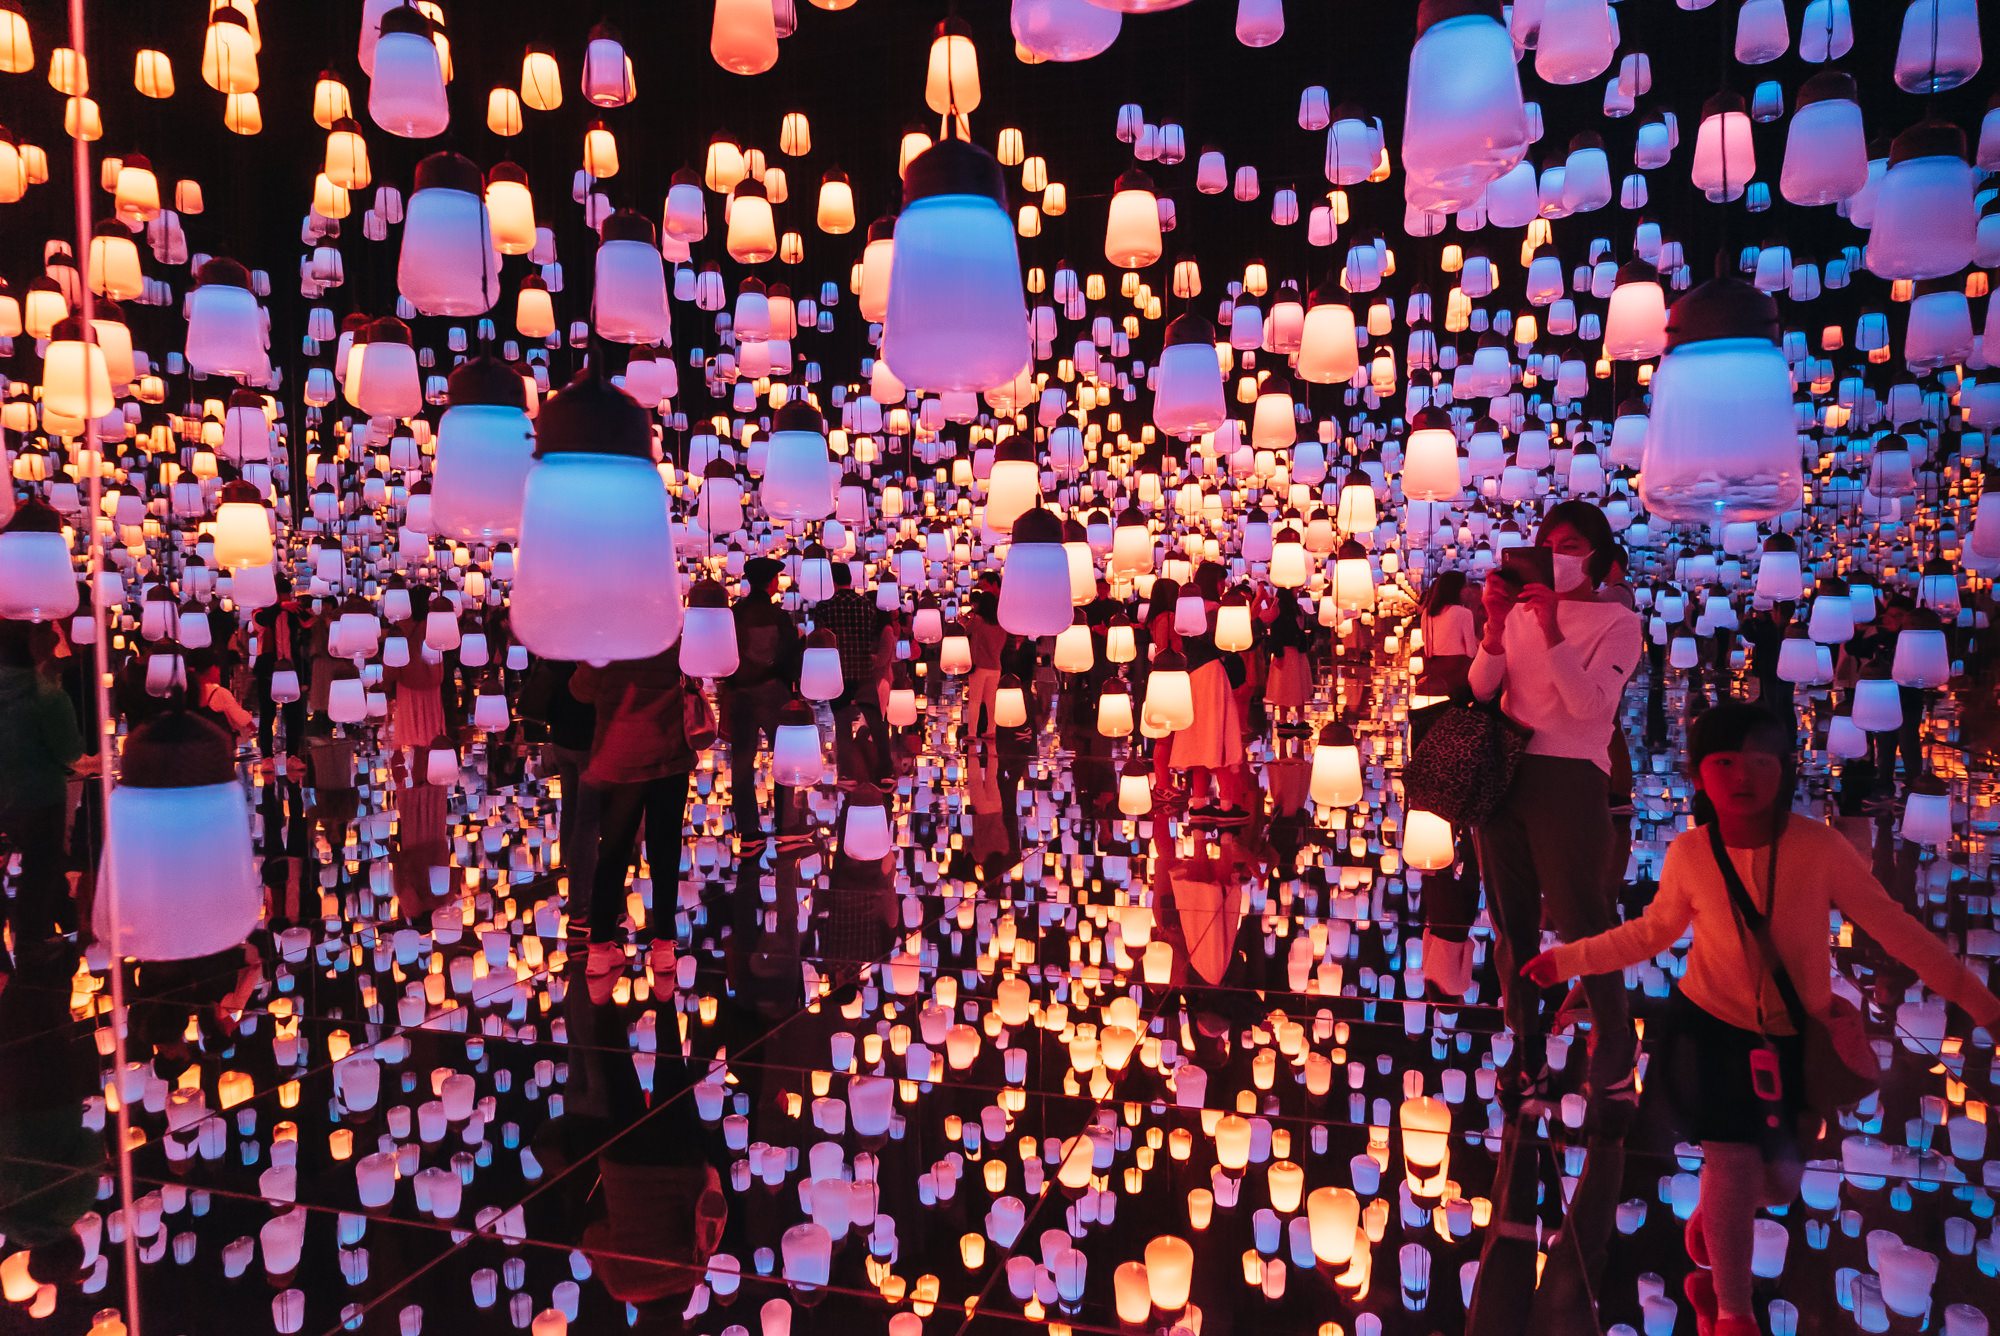 Forest of Lamps